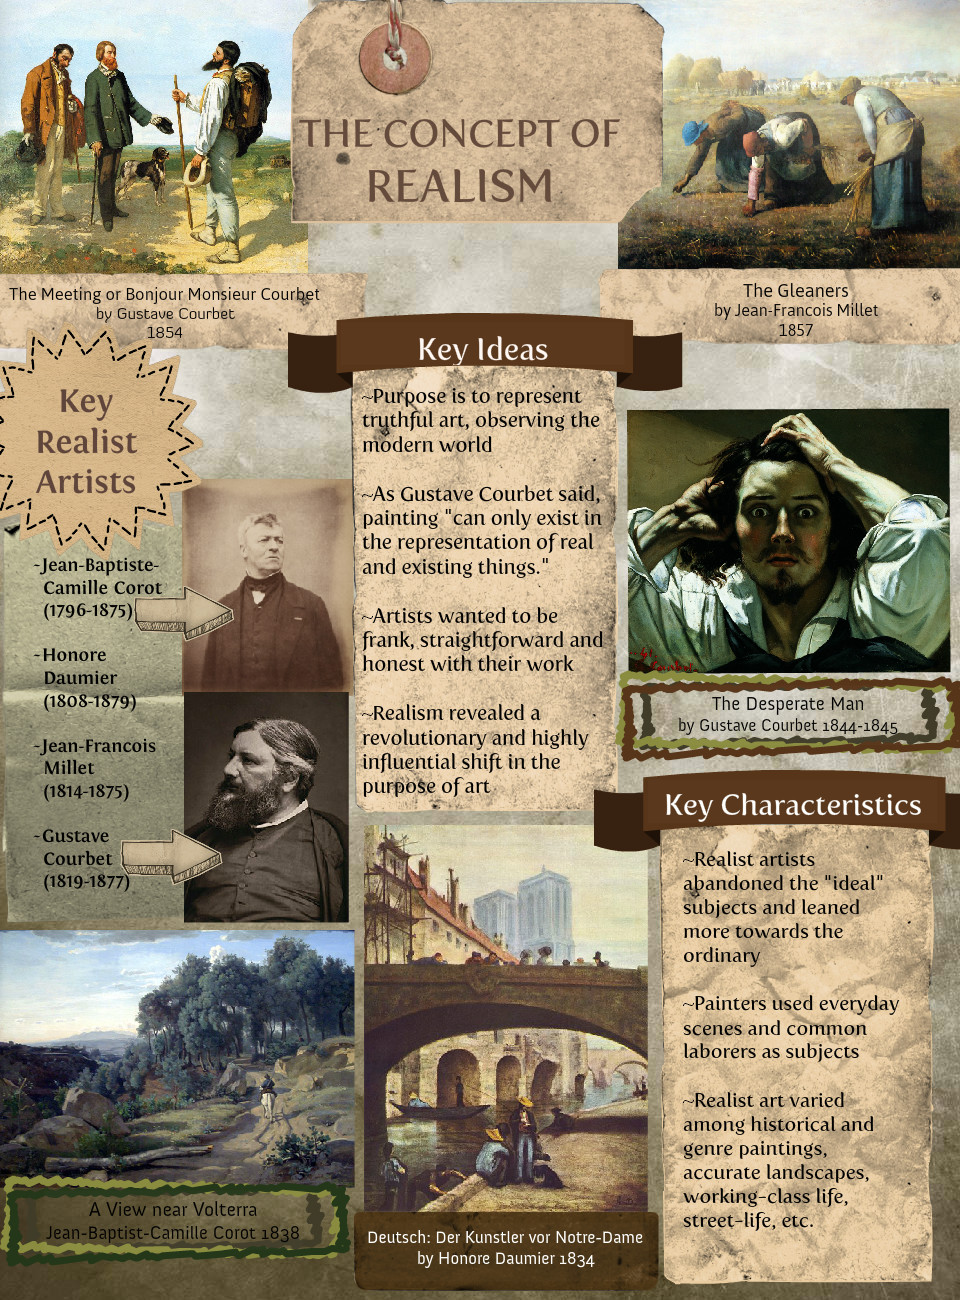 The Concept of Realism